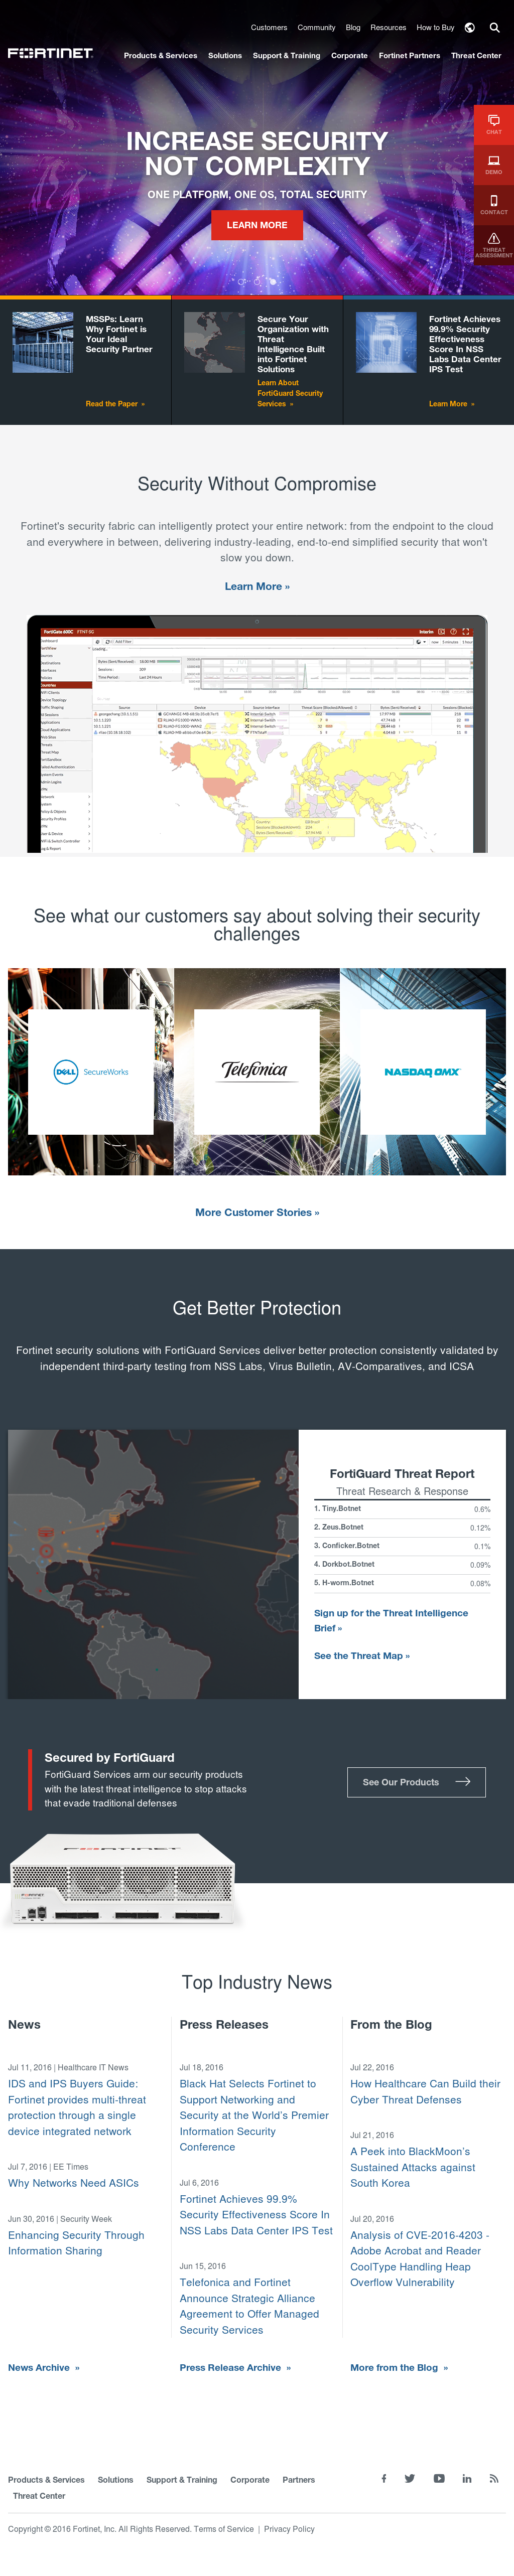 Fortinet's Latest News, Blogs, Press Releases & Videos